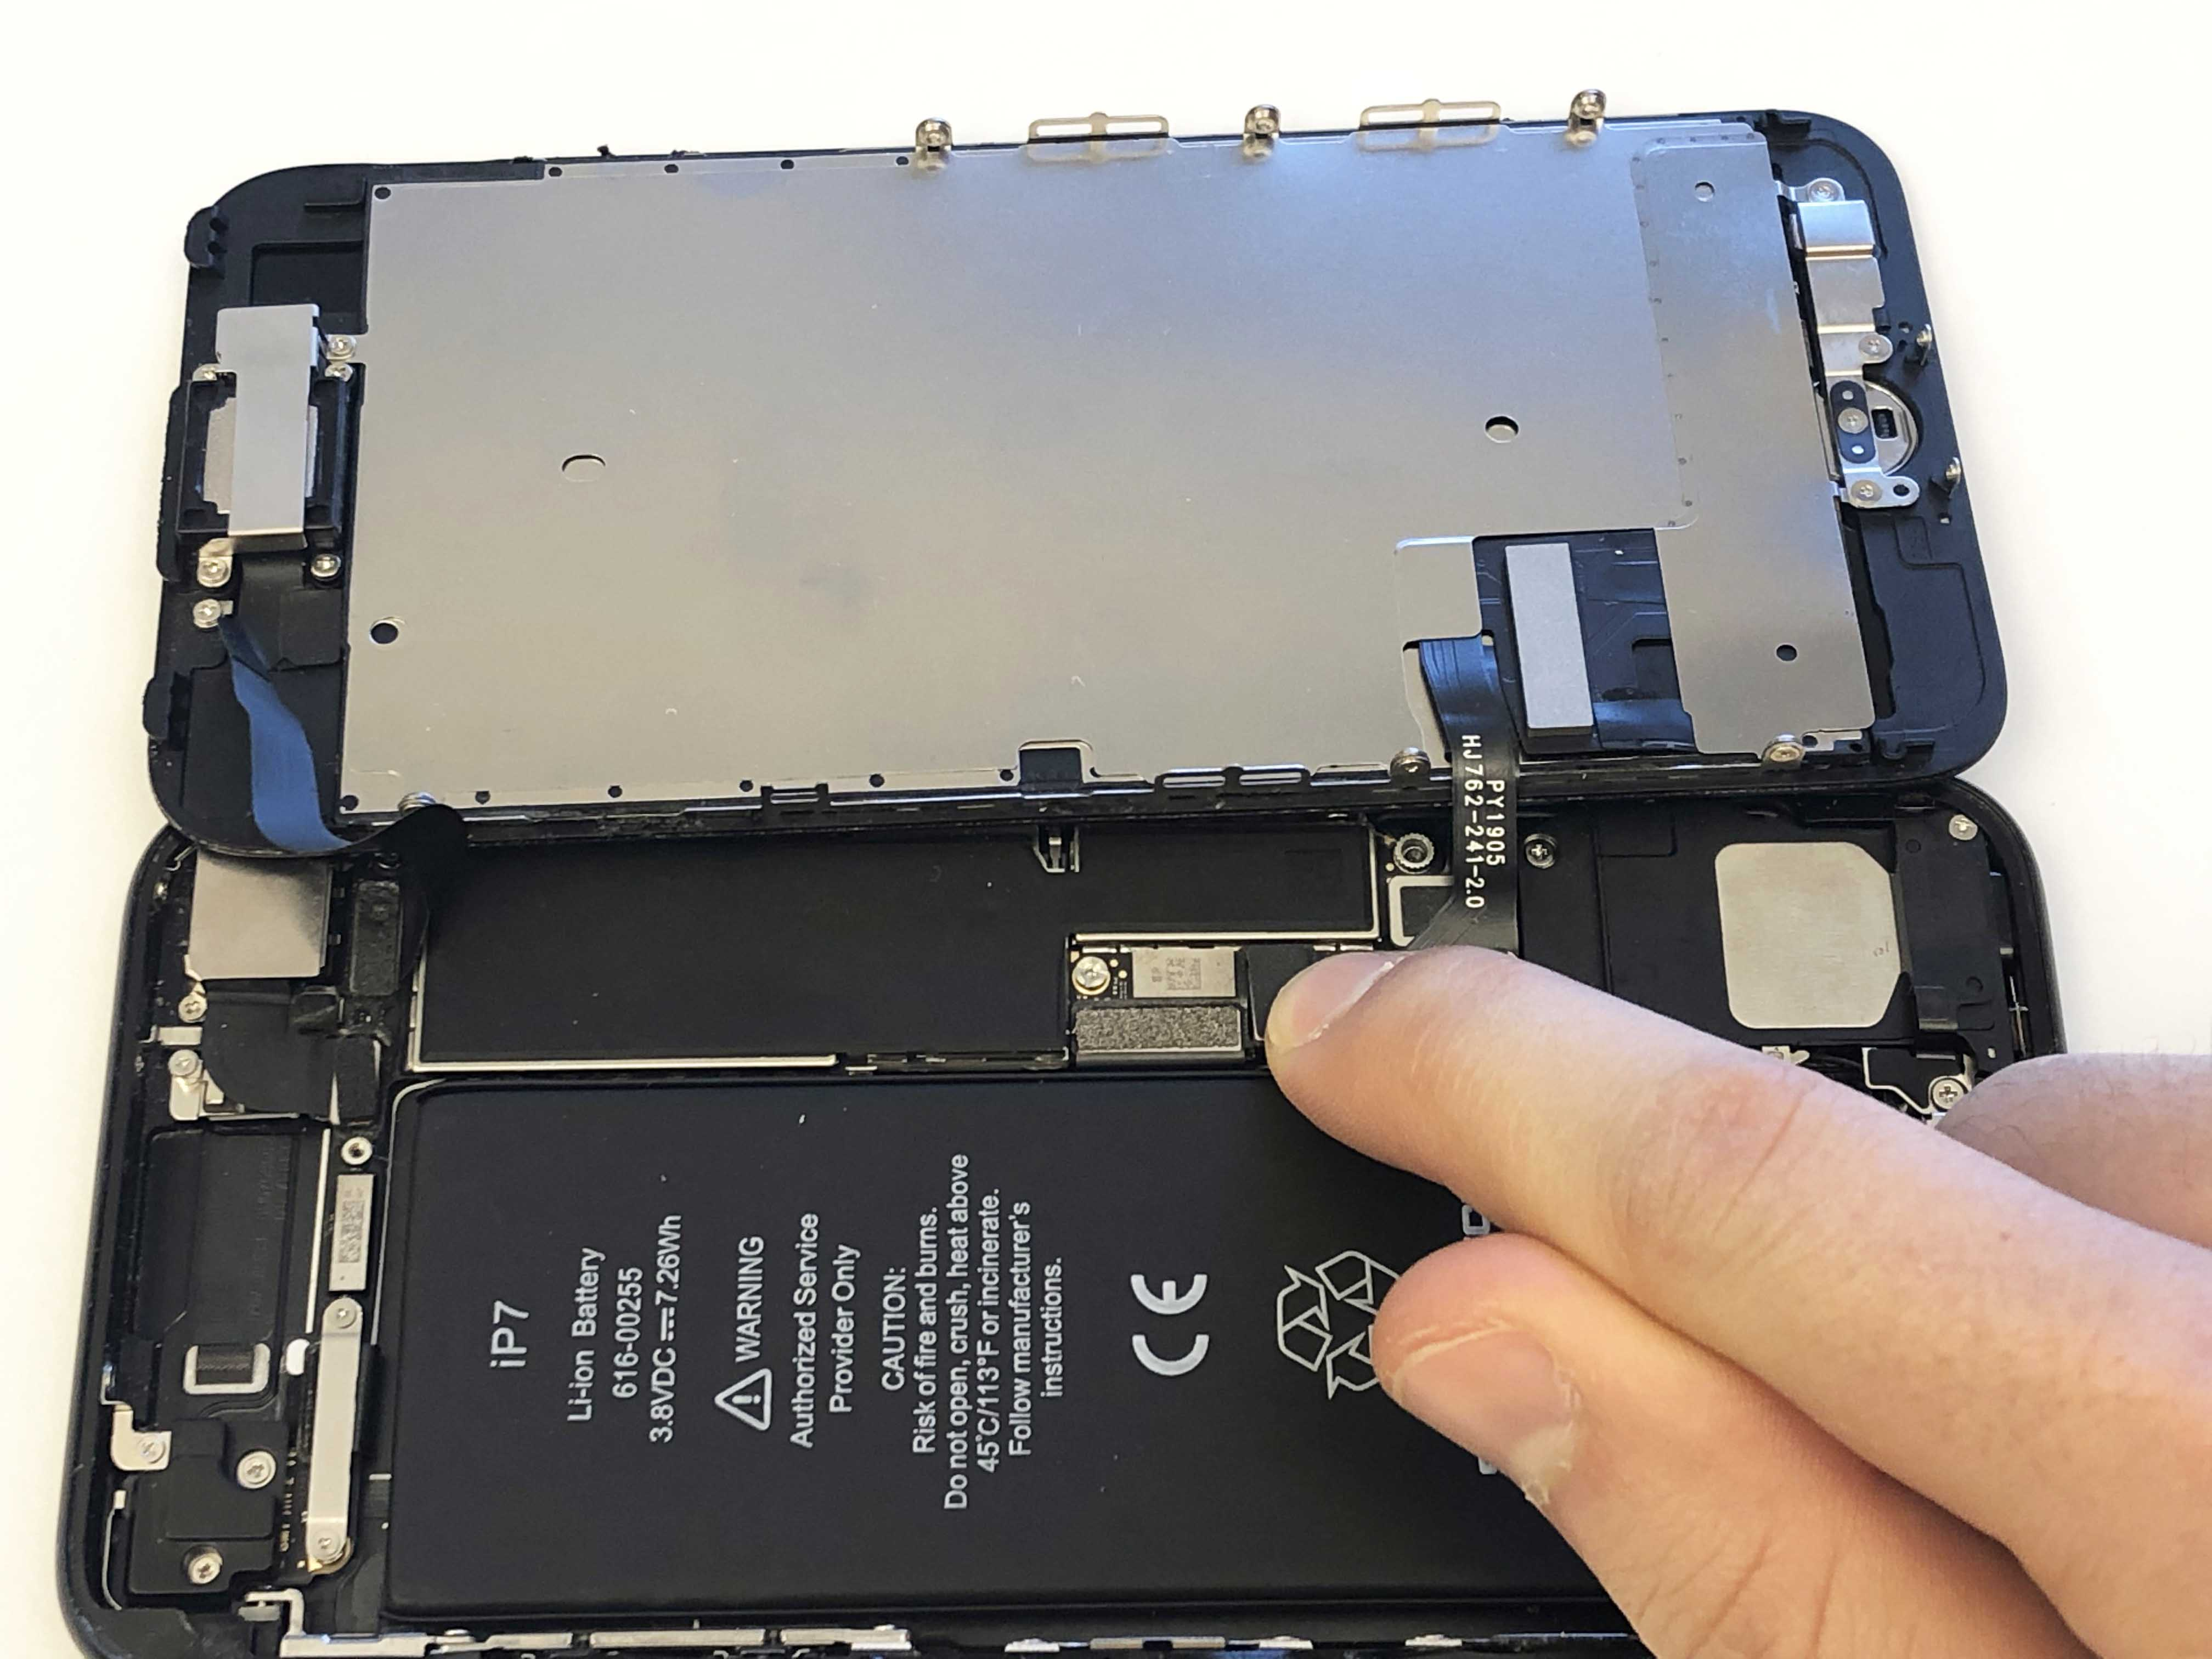 iPhone 7/7 Plus Battery Replacement - Reinstalling the phone screen - 5